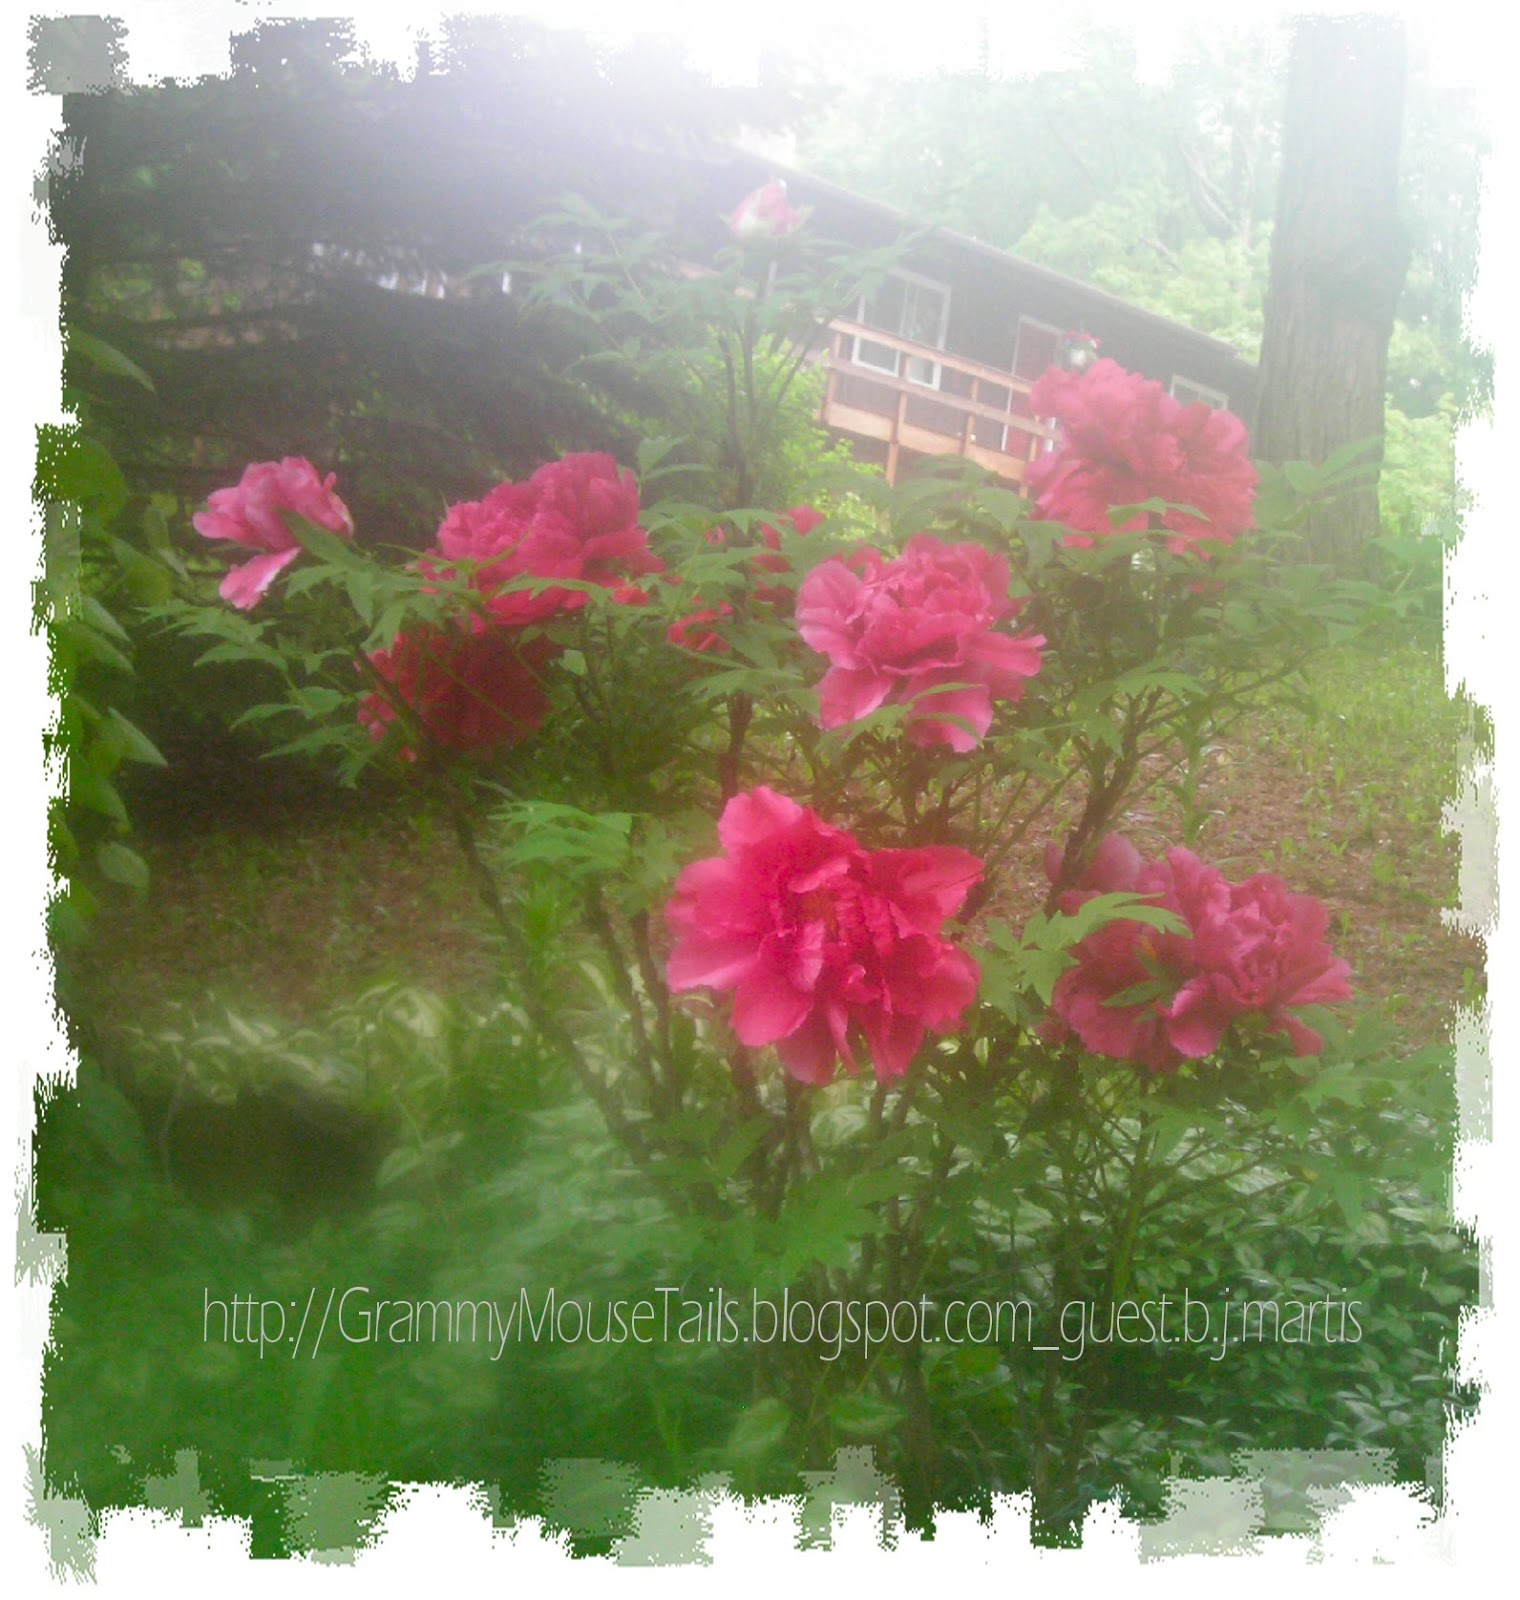 pink peony tree early evening mist photo image